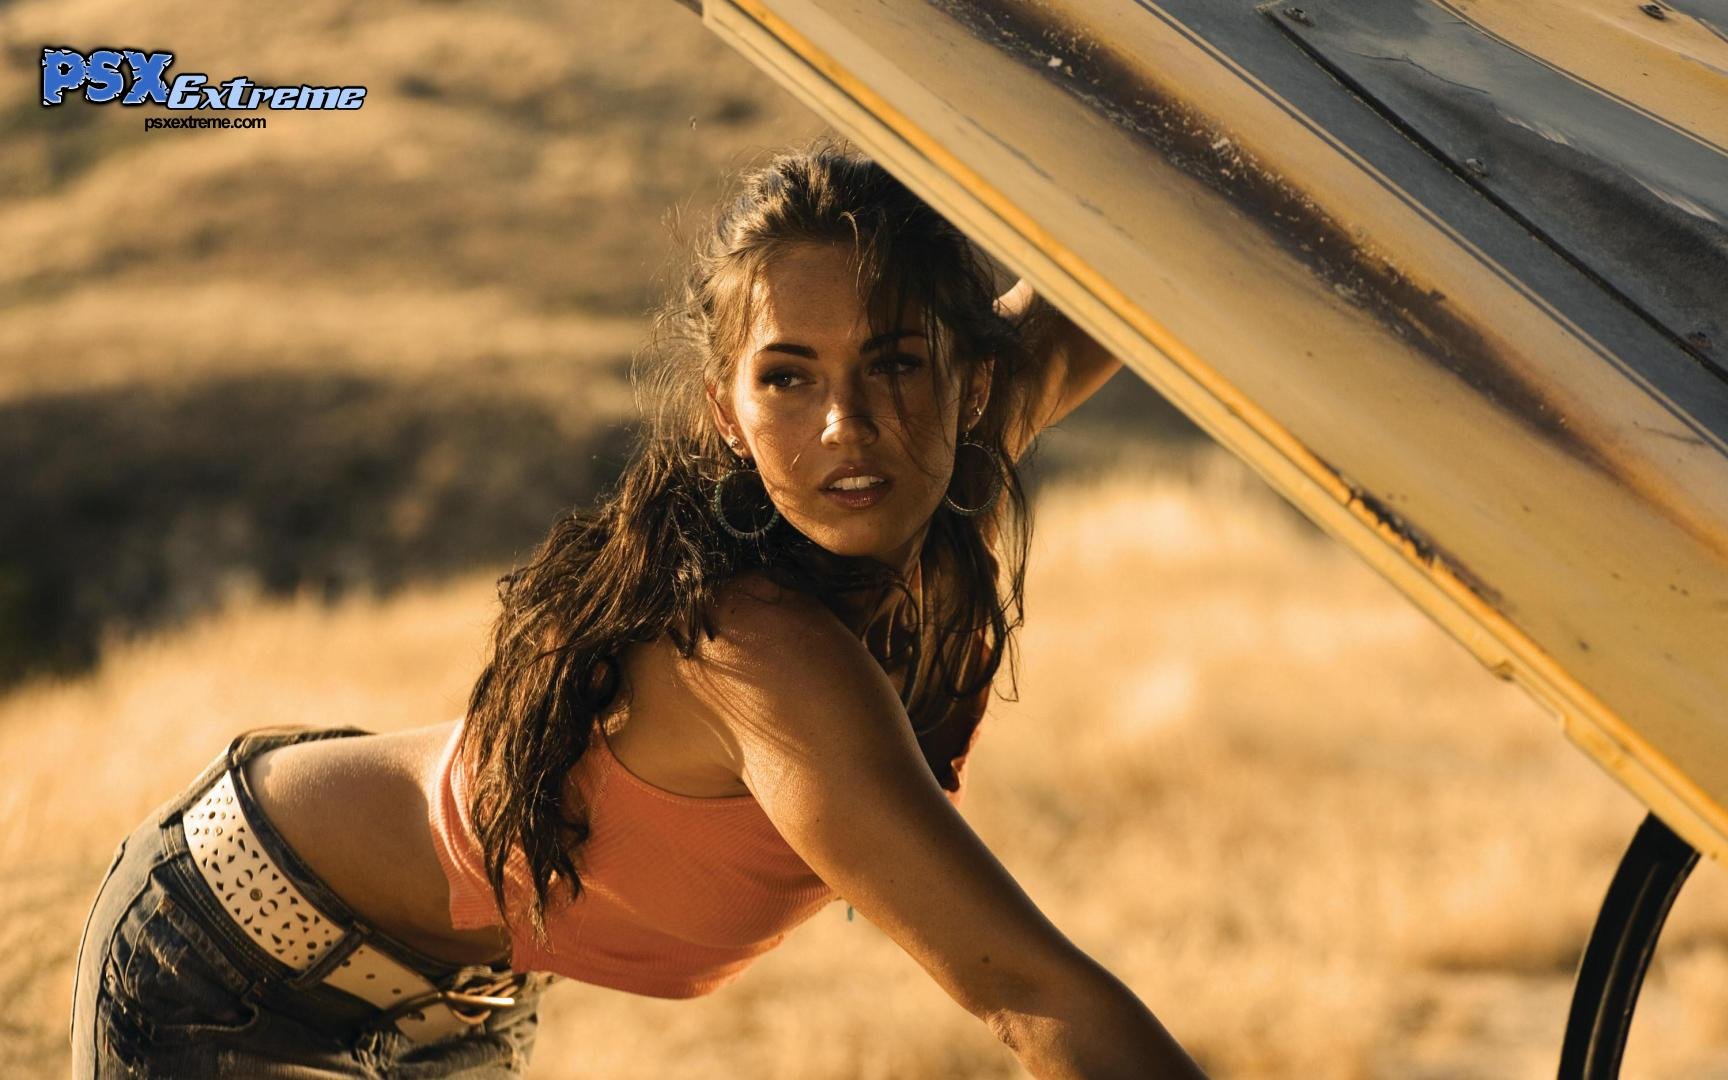 http://images.psxextreme.com/wallpapers/ps3/megan_fox_01.jpg